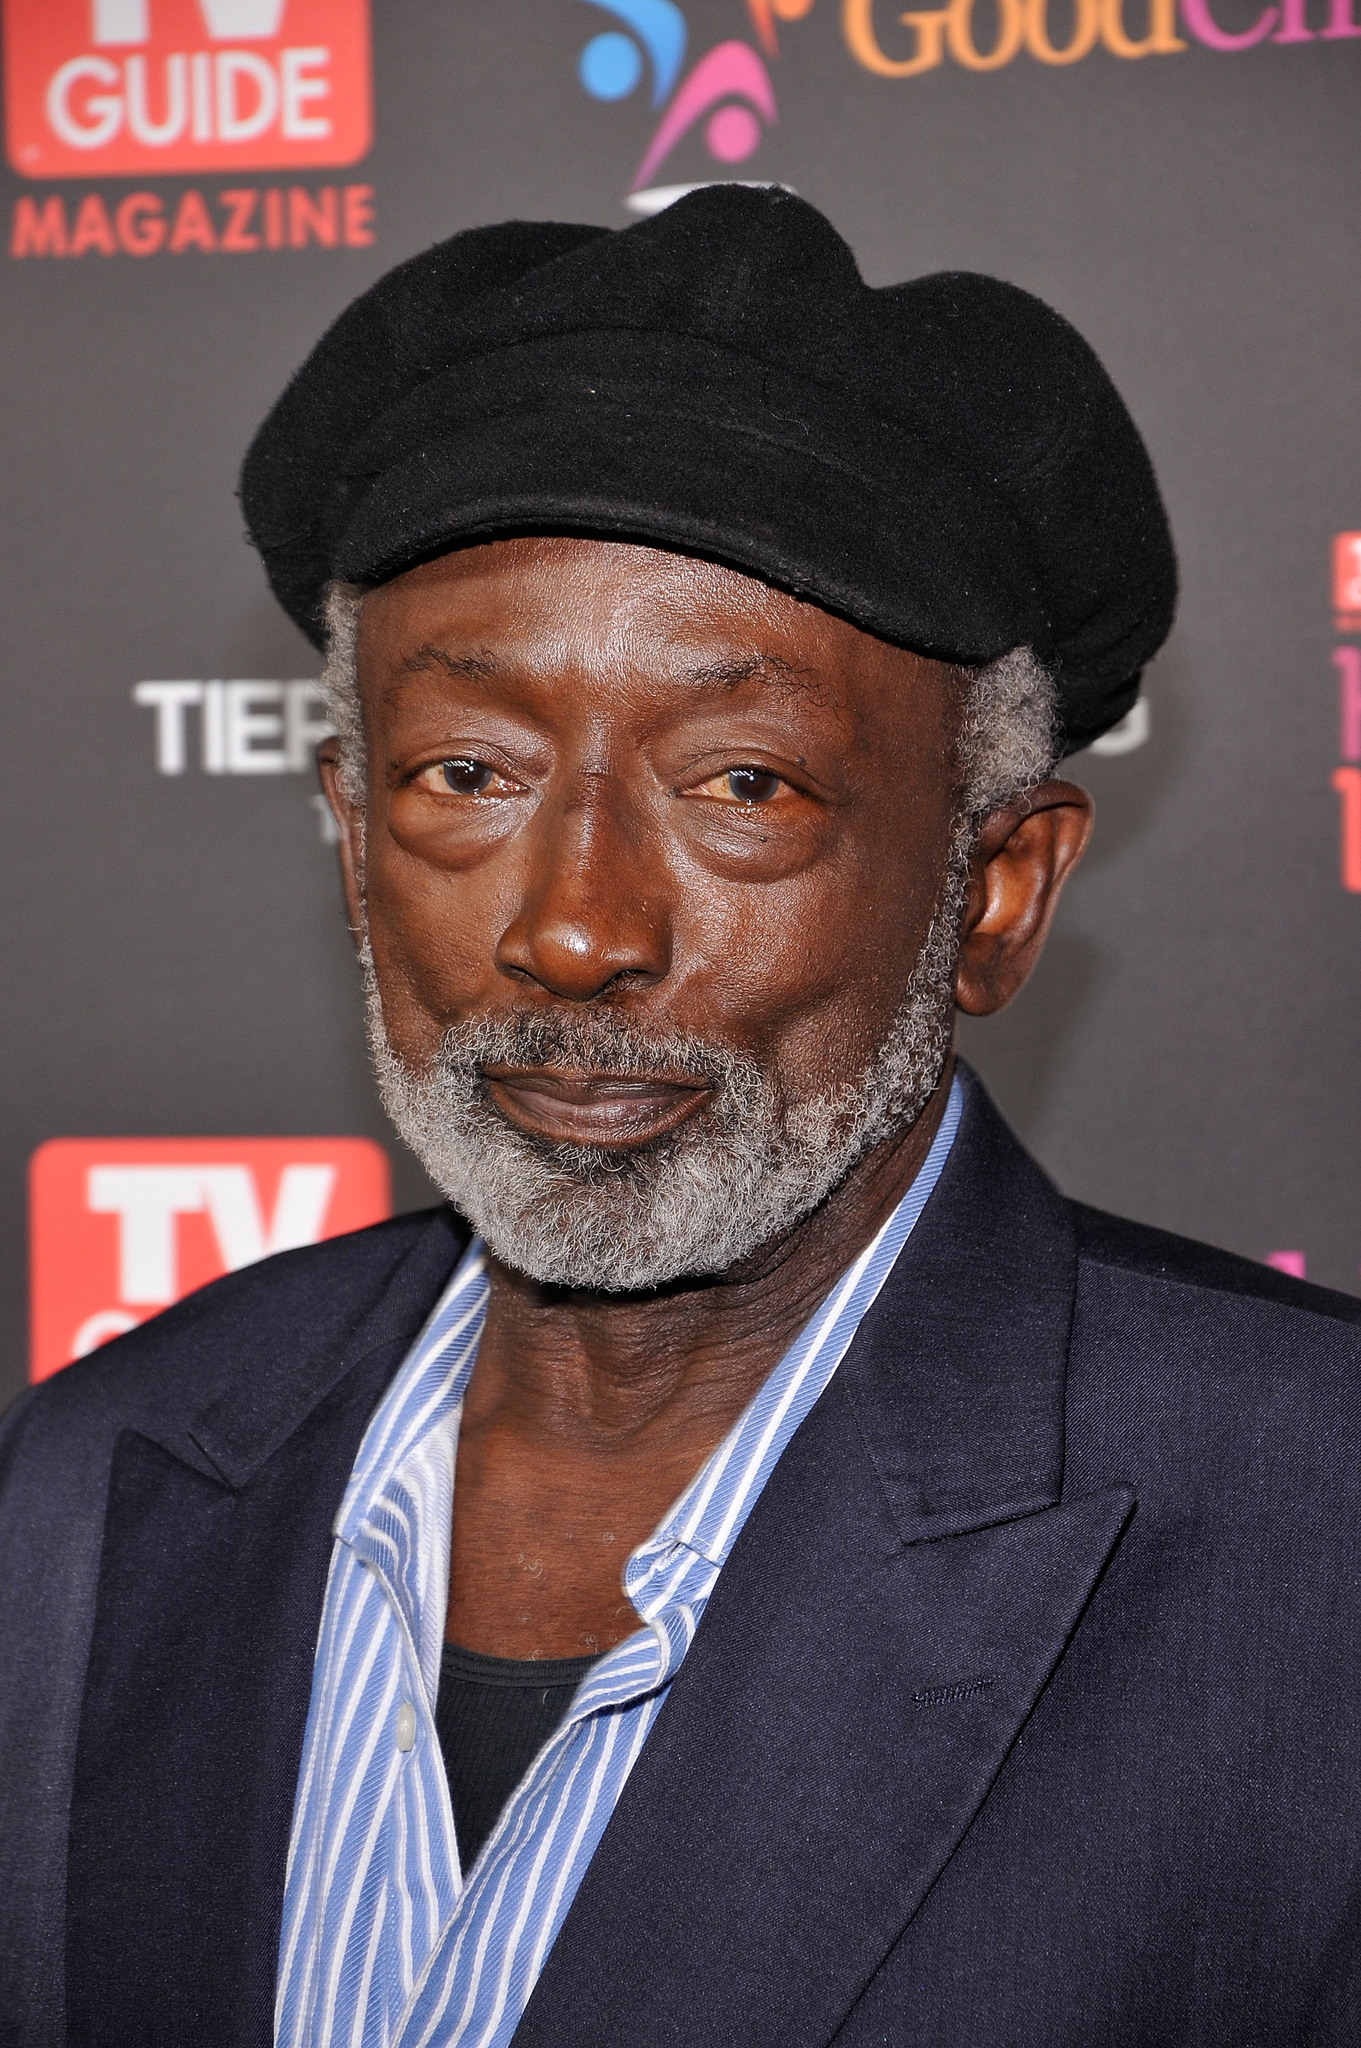 The 83-year old son of father (?) and mother(?) Garrett Morris in 2020 photo. Garrett Morris earned a  million dollar salary - leaving the net worth at  million in 2020